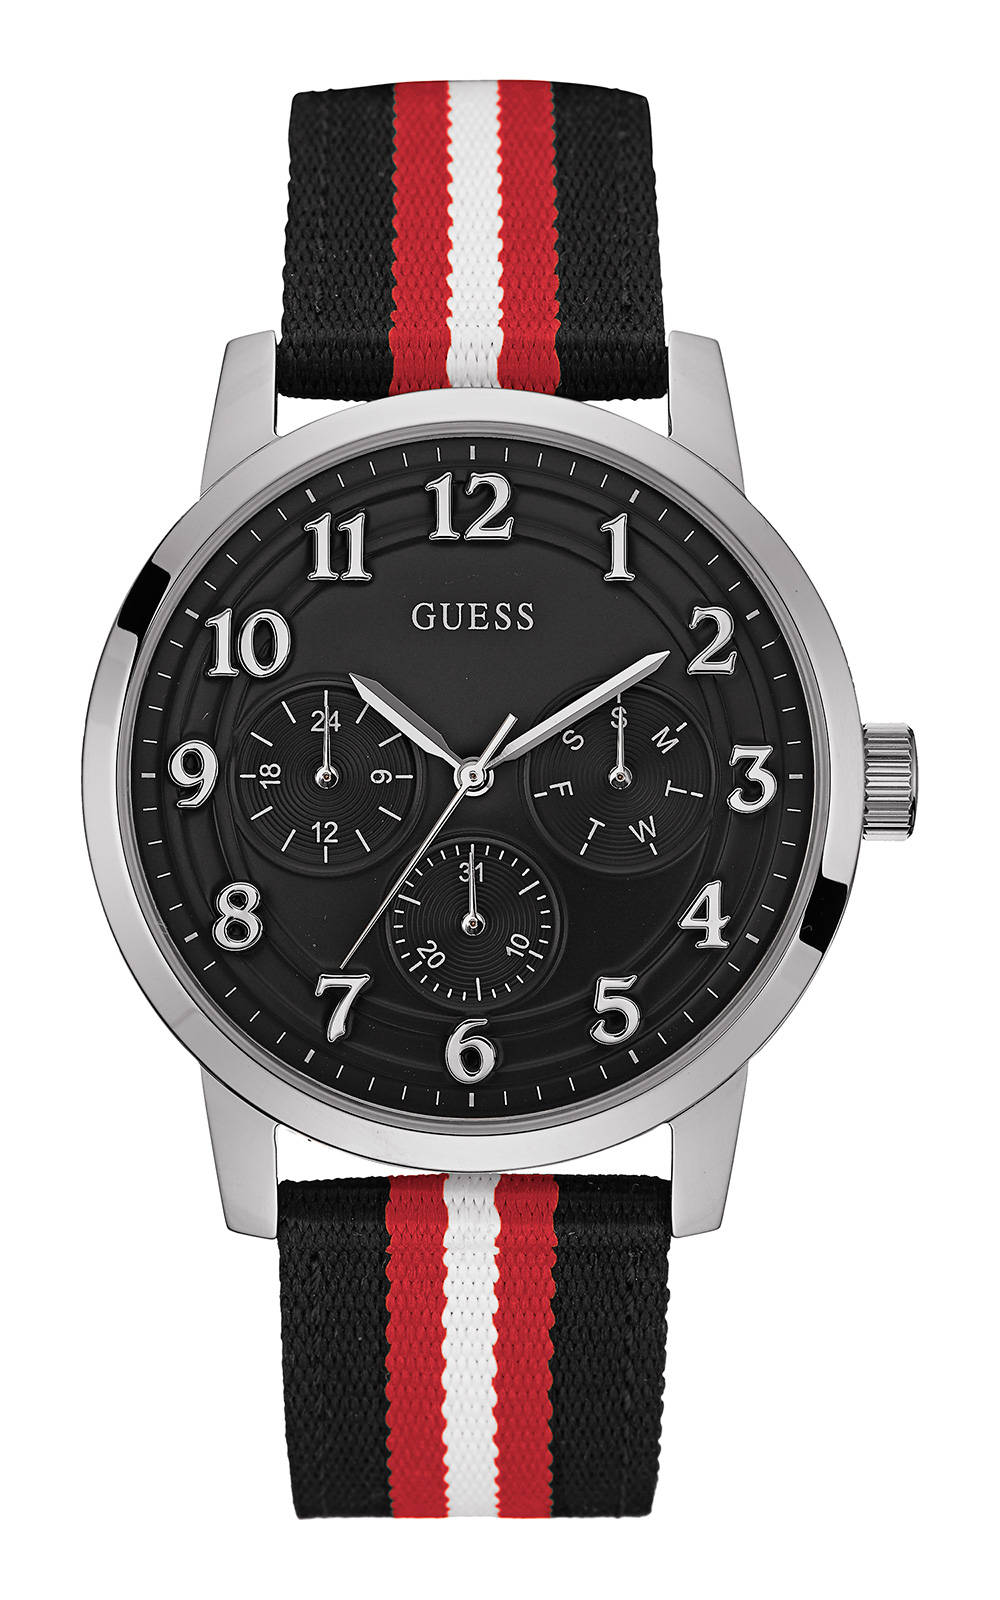 GUESS W0975G1 Ανδρικό Ρολόι Quartz Multi-Function 4372d963dfa